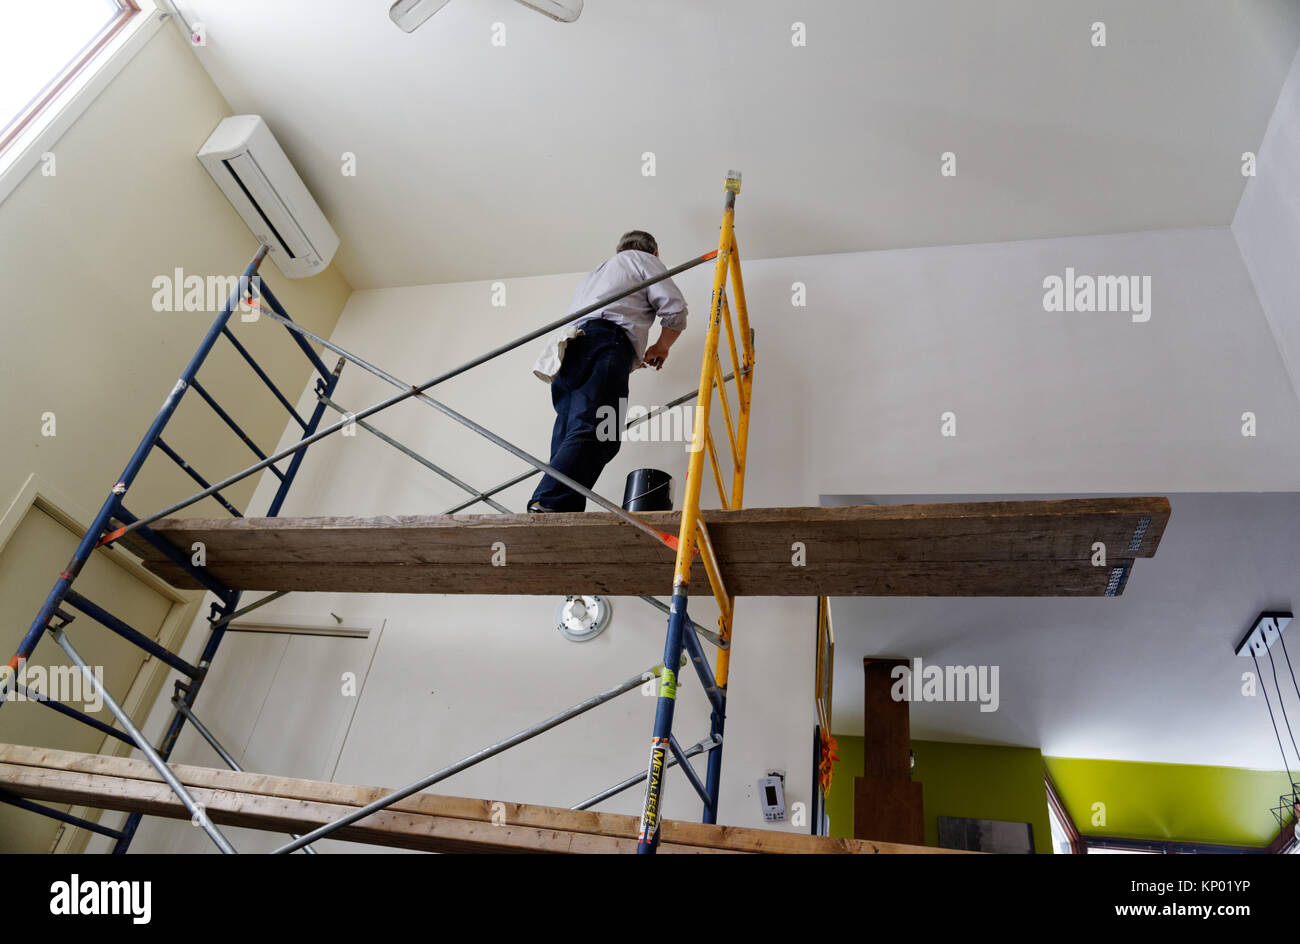 A decorator painting a house interior, difficult access involving scaffolding - Stock Image